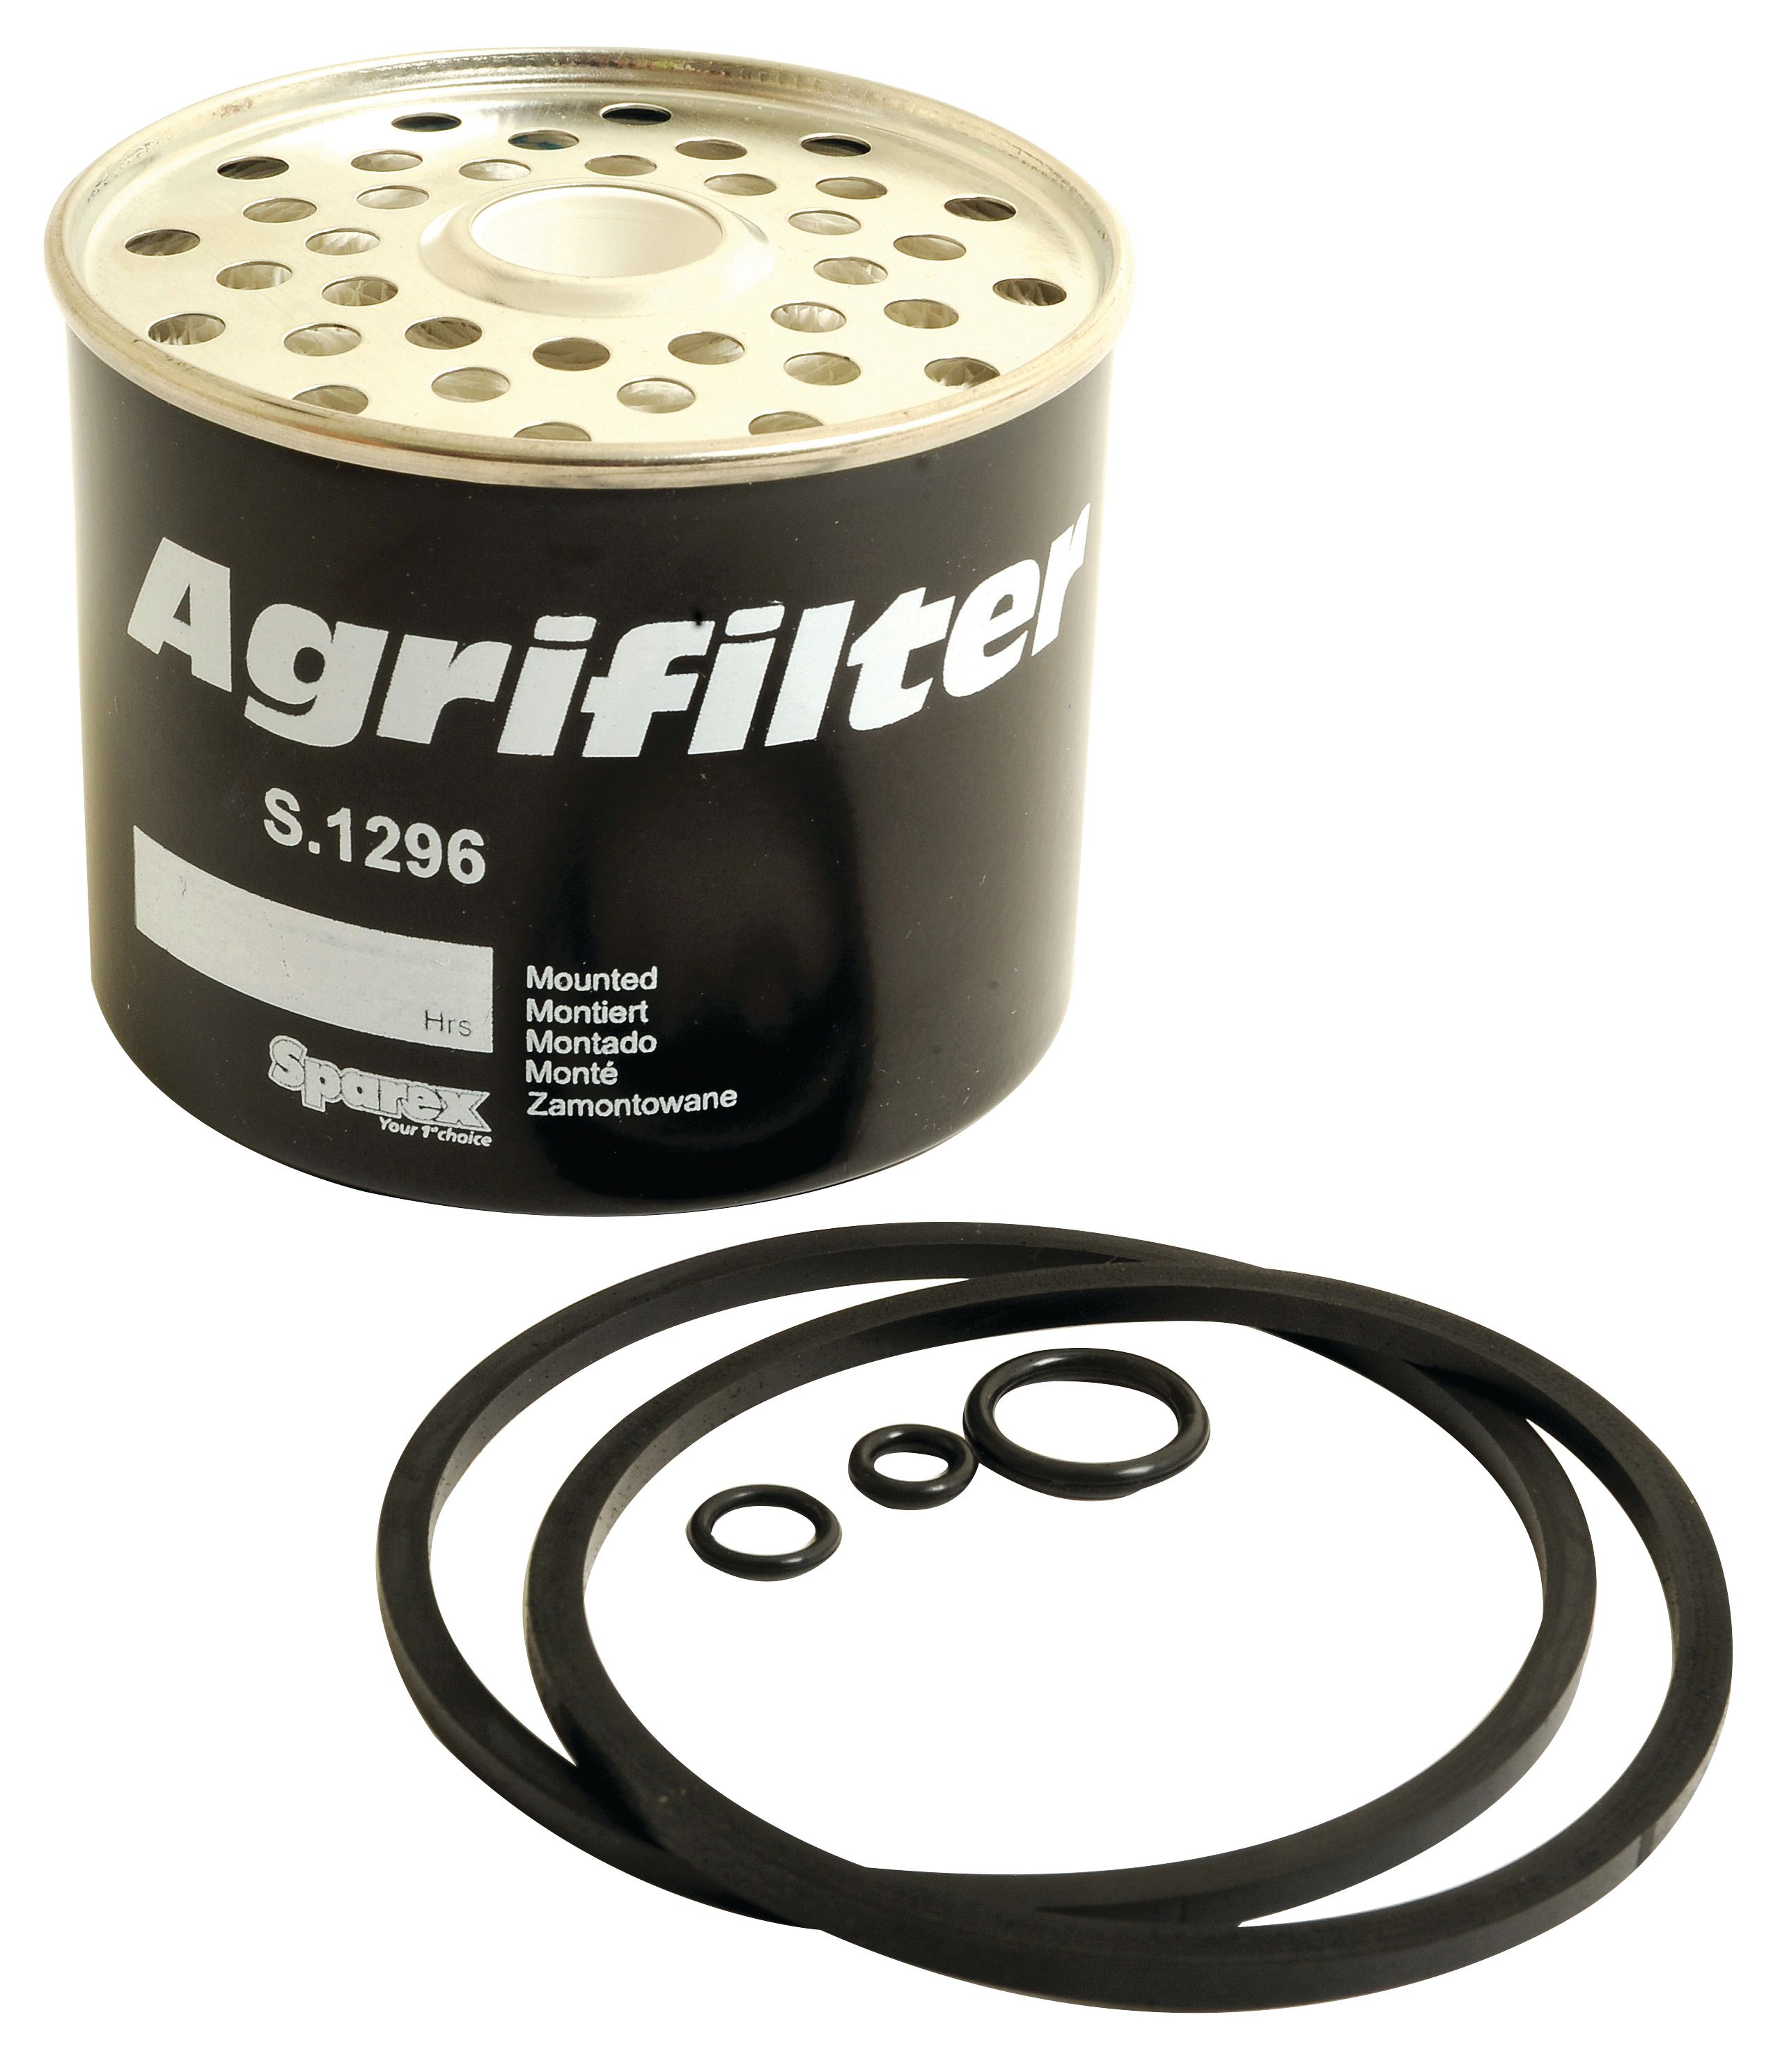 ROADLESS FUEL FILTER 1296